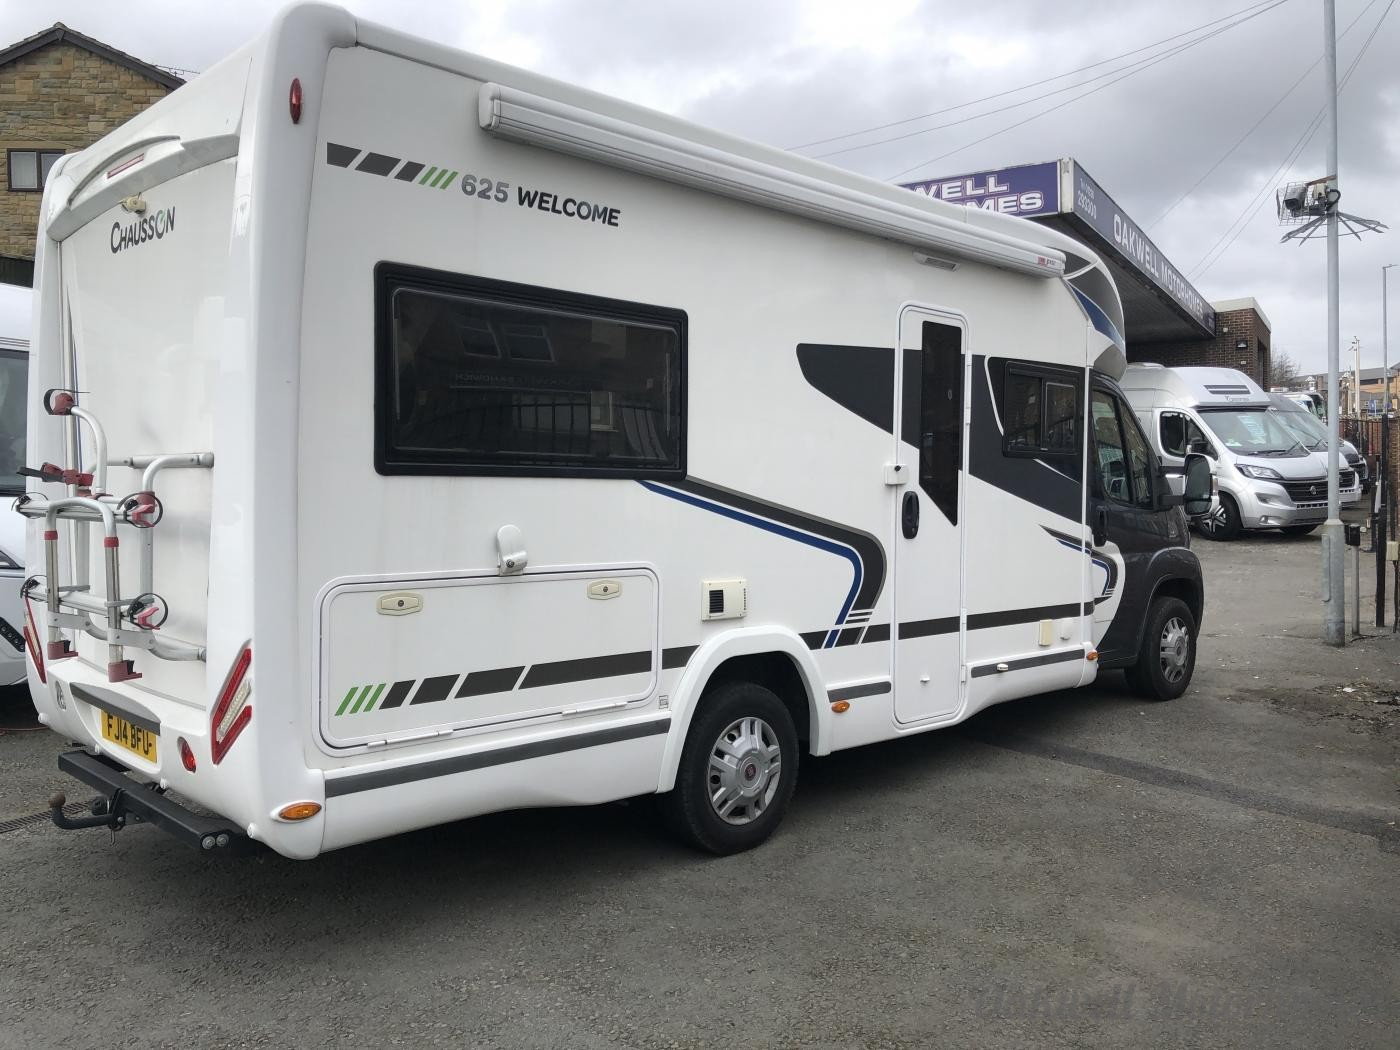 Chausson Welcome 625 2014